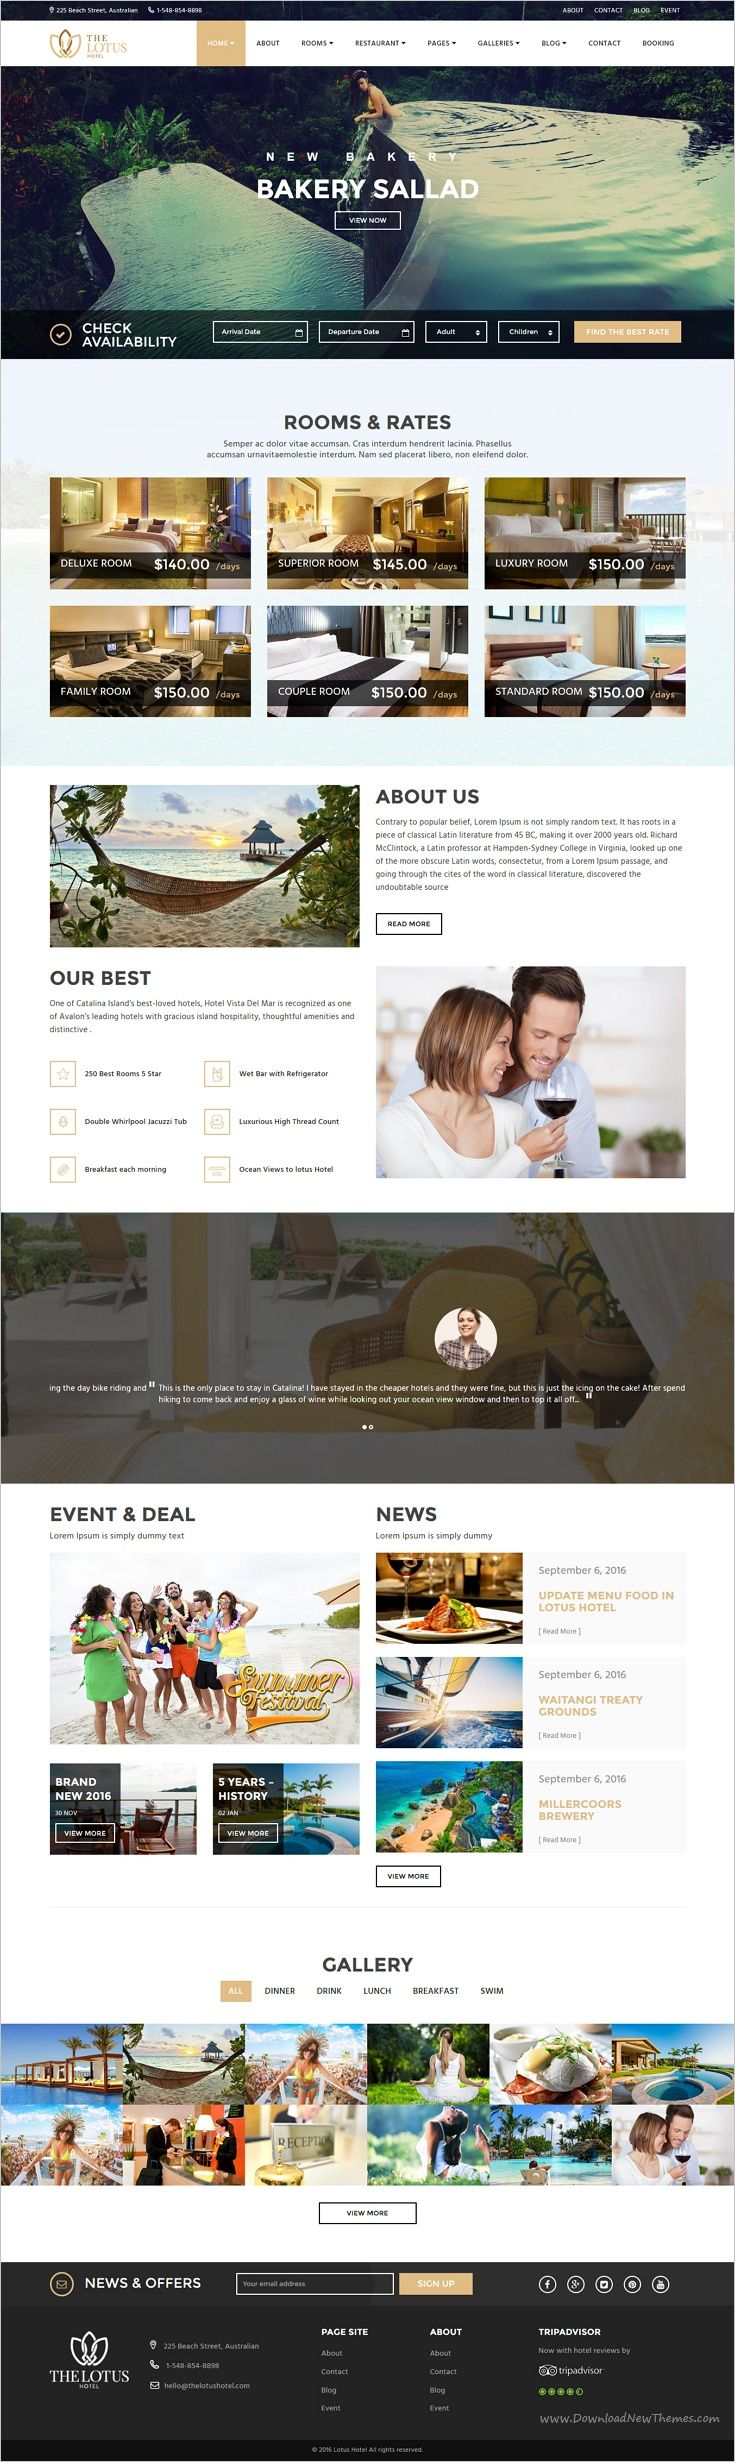 Lotus is an attractive and modern 2in1 #WordPress Theme that is perfect for #hotels, #resorts, #villas, B&B's or any types of hotel industry website download now➩ https://themeforest.net/item/lotus-hotel-booking-wordpress-theme/18087288?ref=Datasata